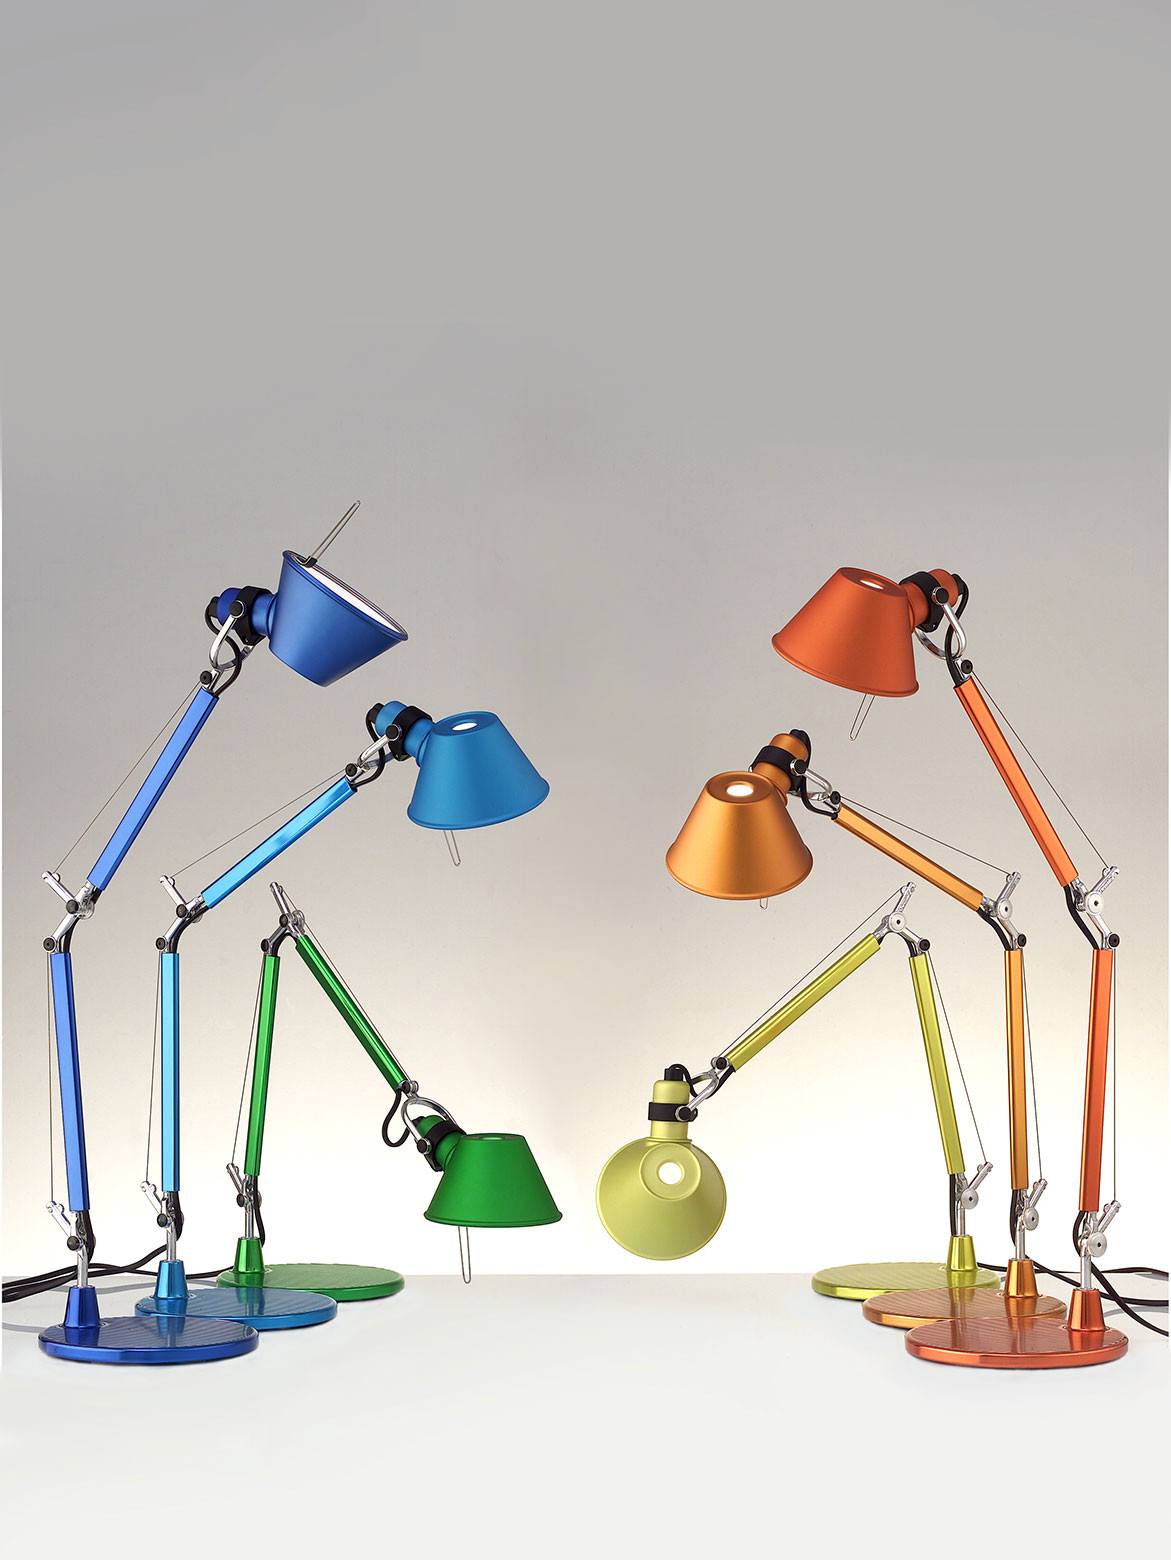 Michele De Lucchi: Object Of Design History | Artedmide Tolomeo Micro Table Lamp